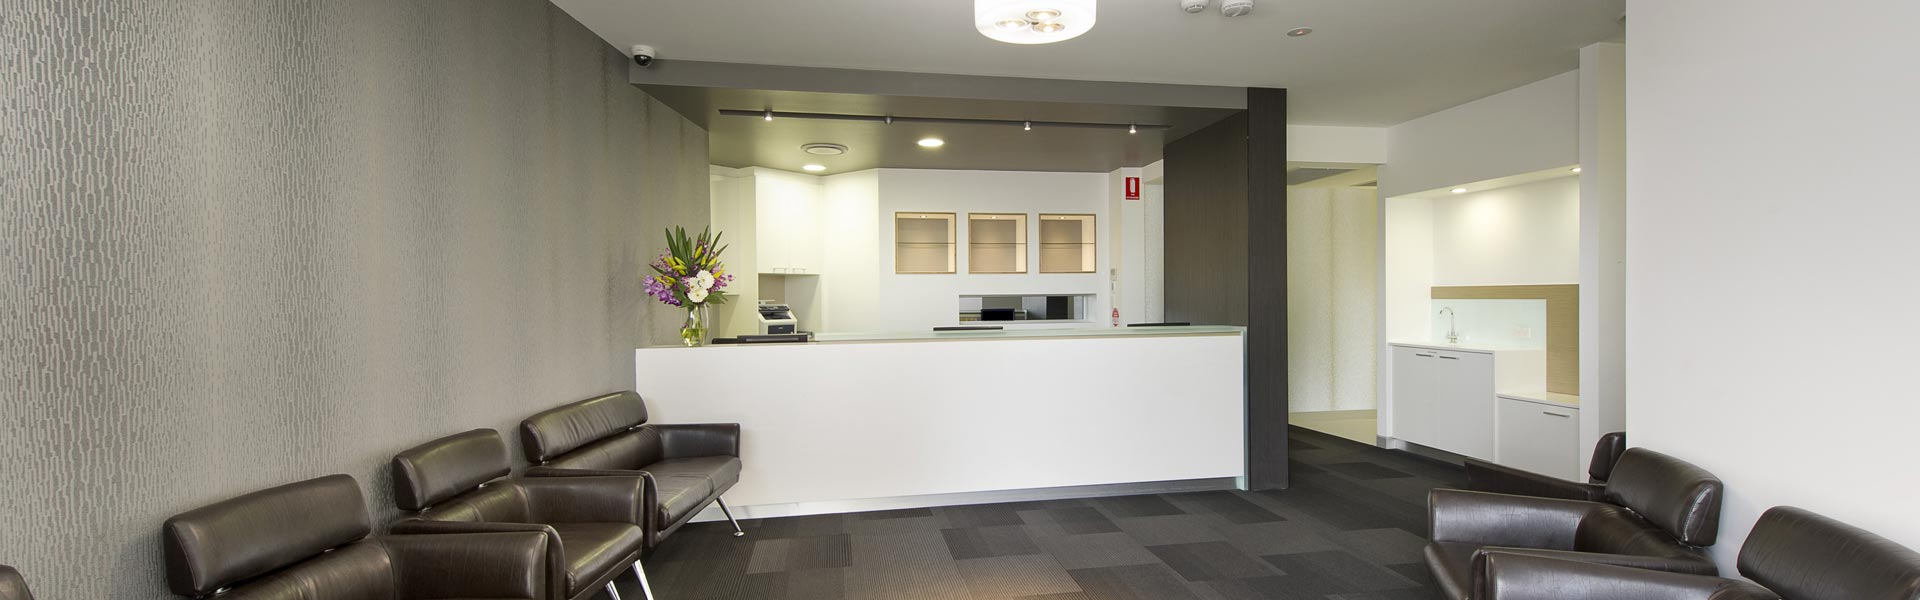 Buderim Dental Reception